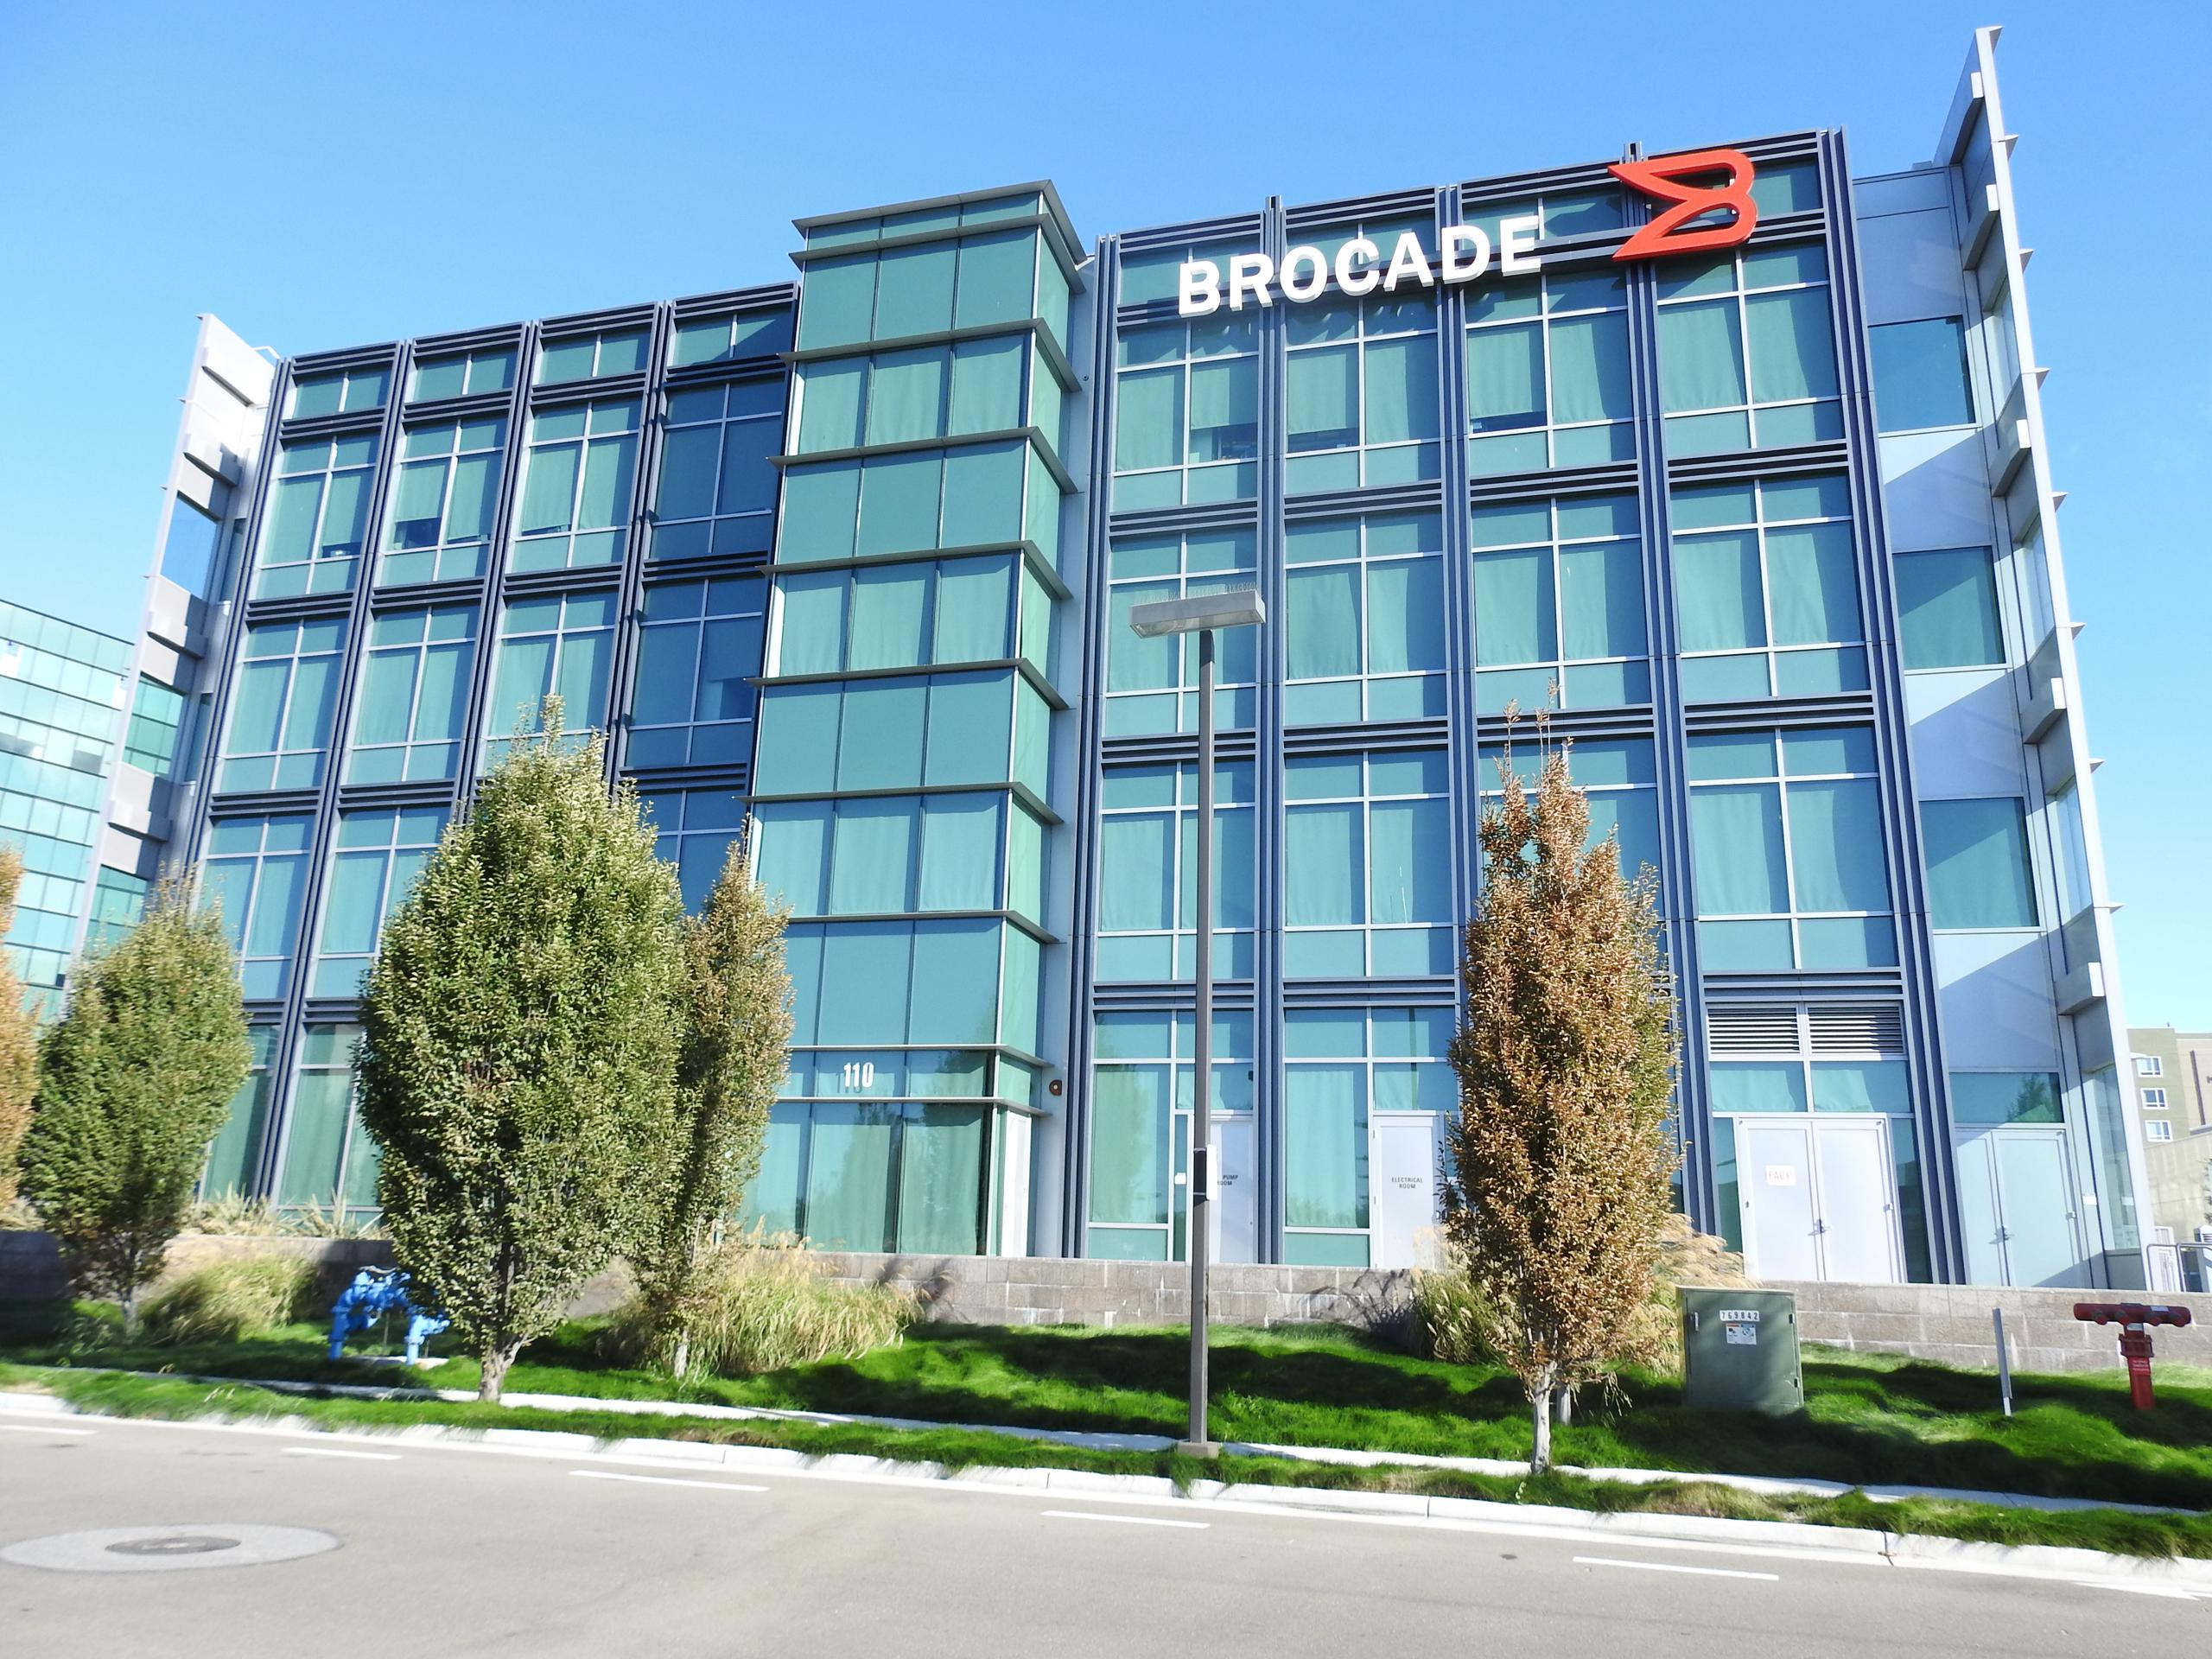 Brocade's corporate headquarters in San Jose, California.